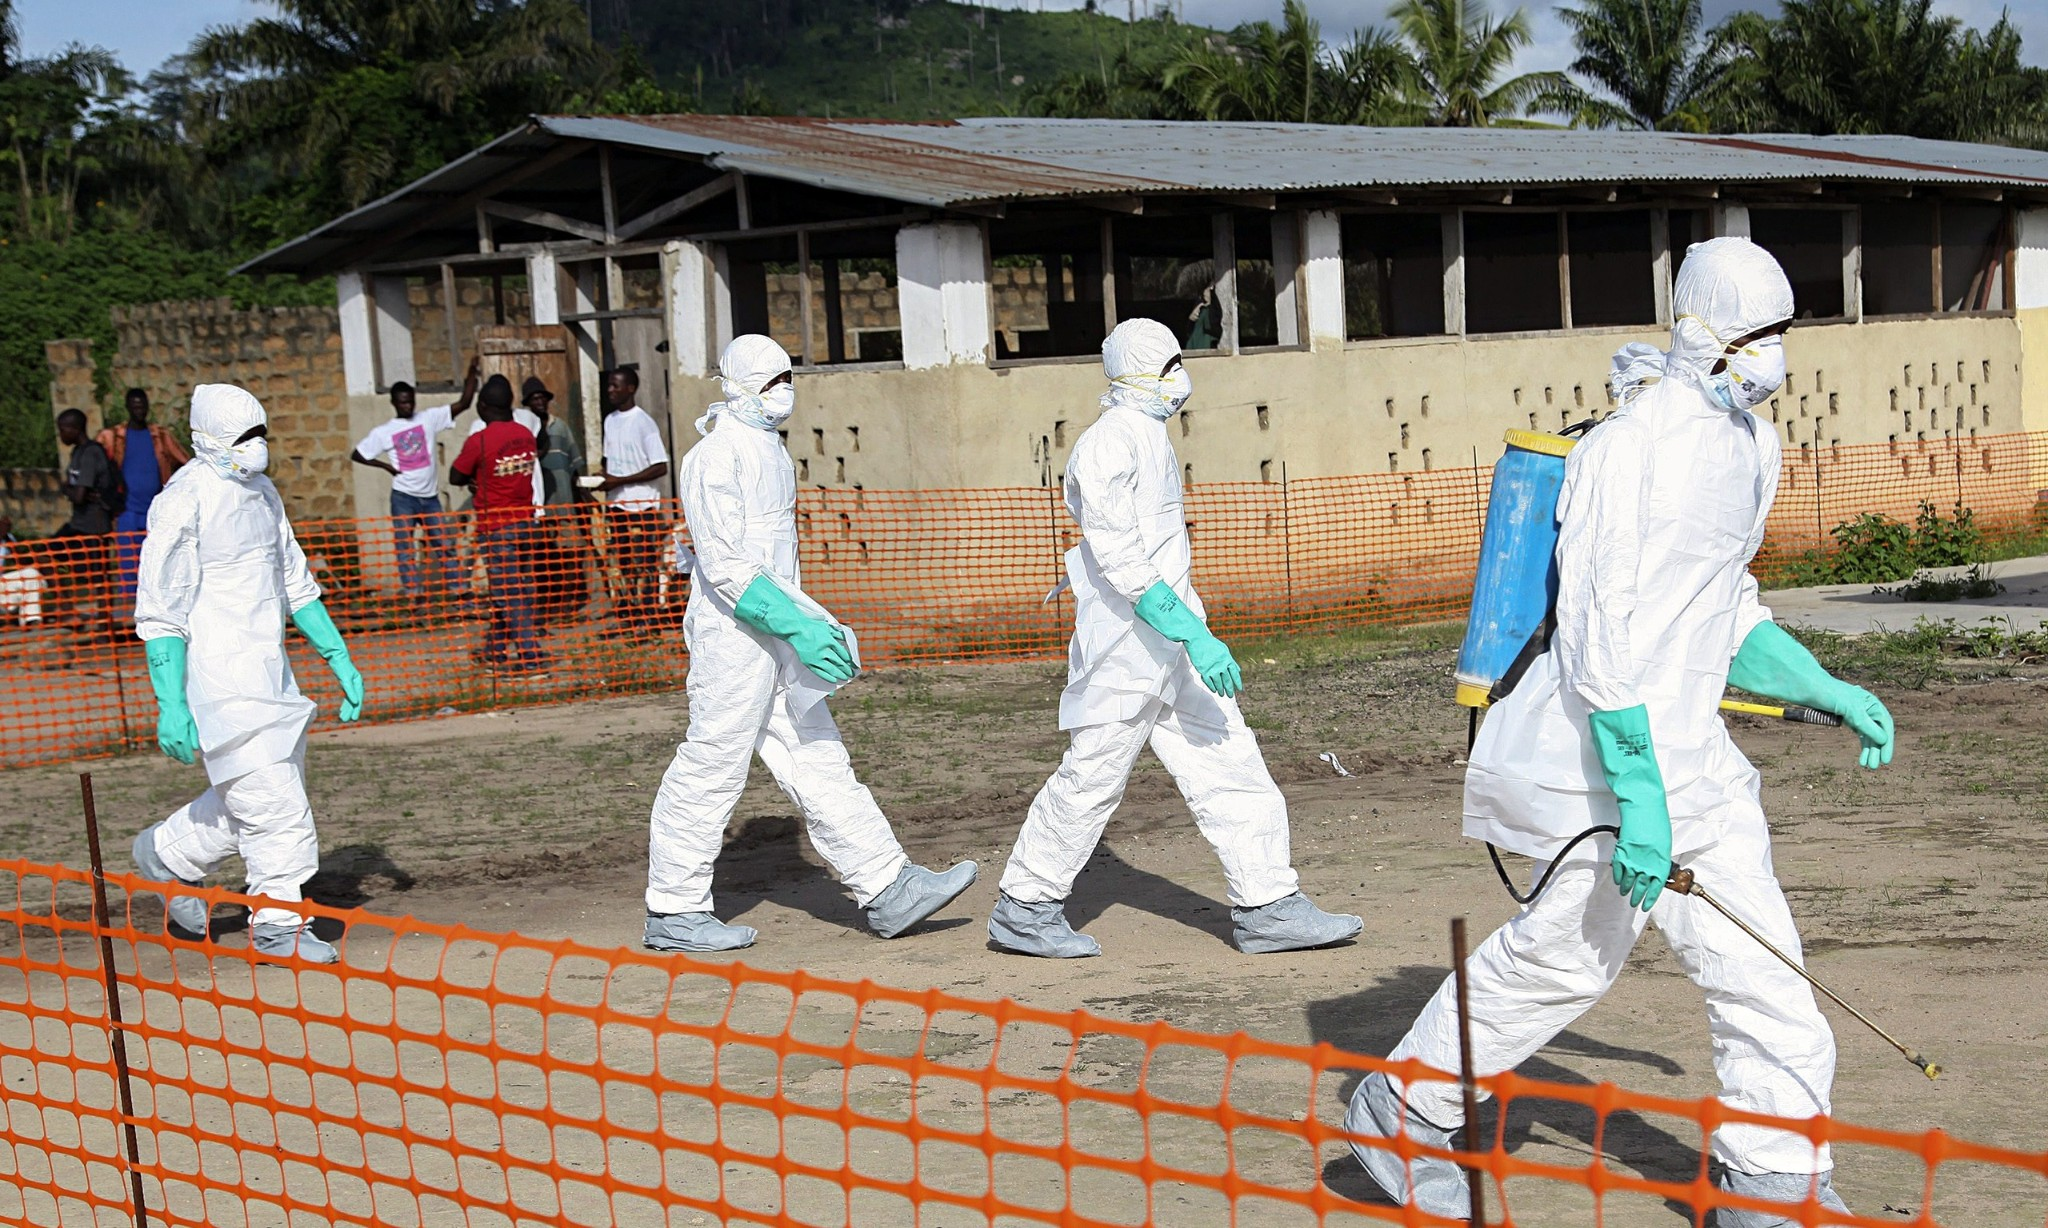 Should we be worried about an Ebola outbreak in the UK?